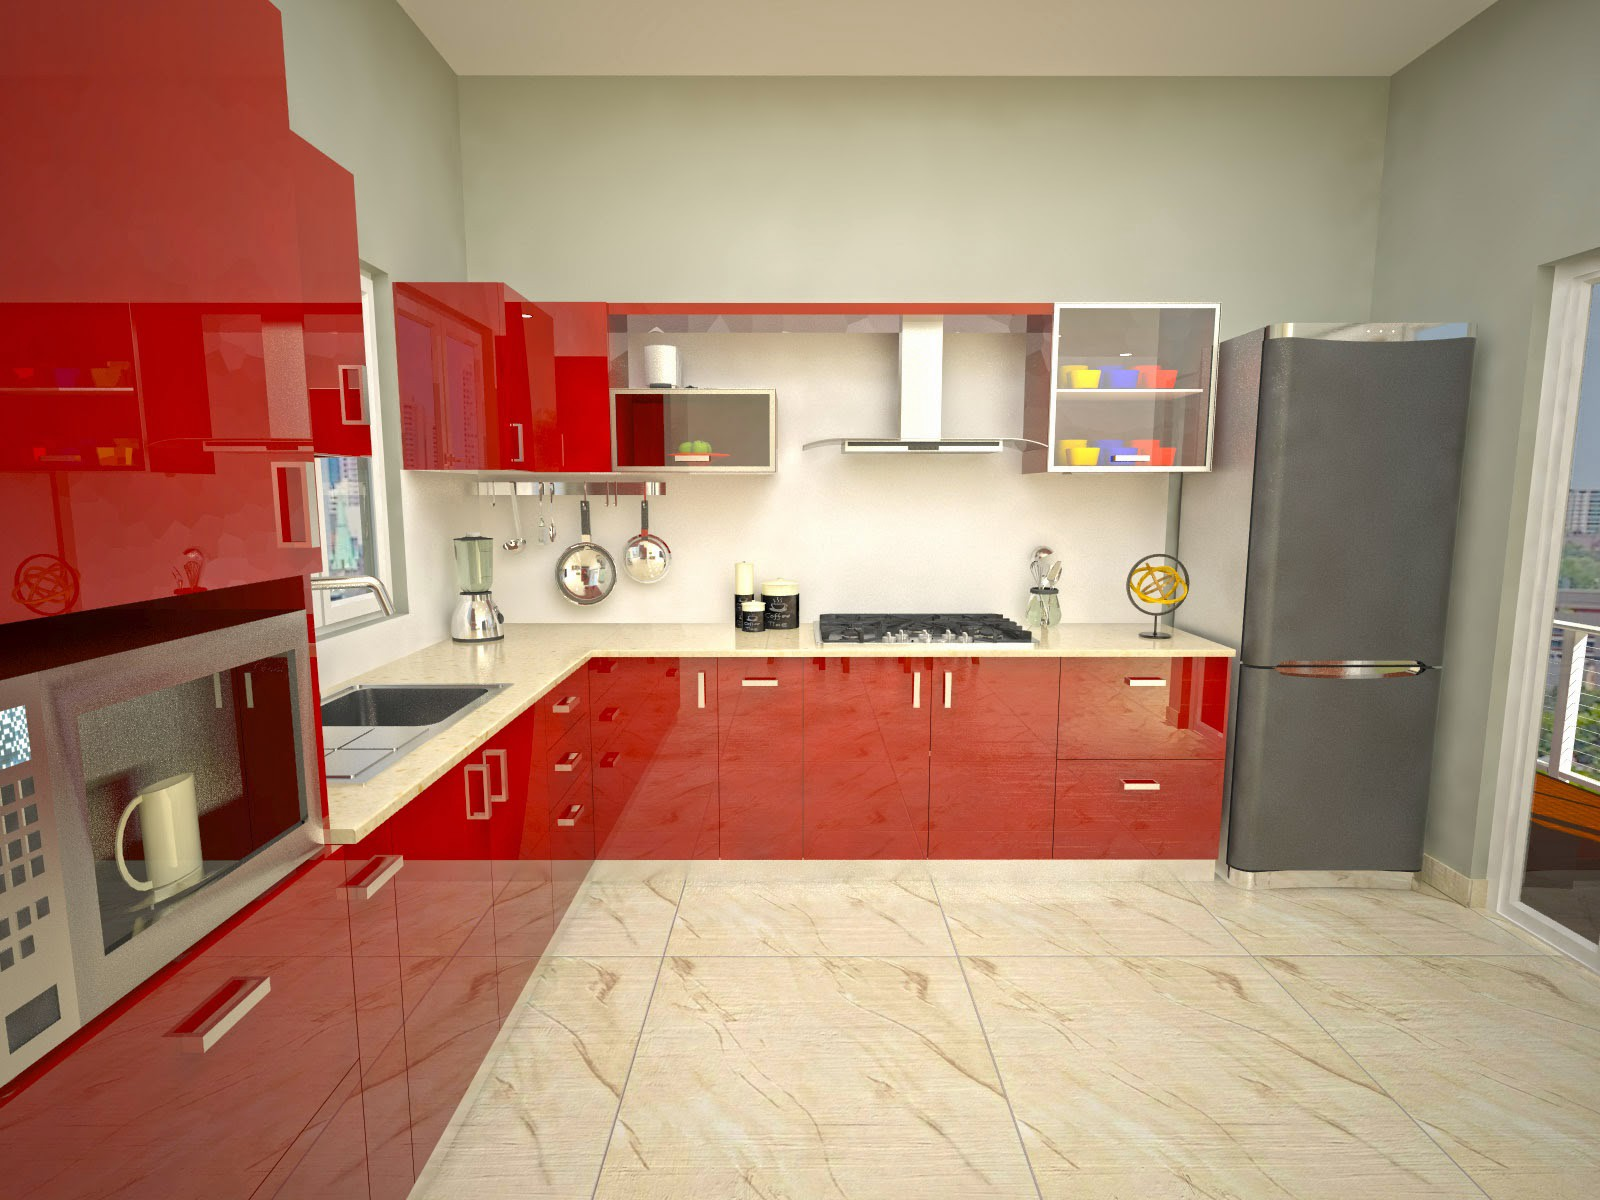 MODULAR KITCHEN INTERIOR IN CHENNAI   HI TECH KITCHEN on cool social ideas, cool toys ideas, cool space ideas, cool water ideas, cool blog ideas, cool style ideas, cool radio ideas, cool innovation ideas, cool legal ideas, cool film ideas, cool sports ideas, cool personal ideas, cool math ideas, cool computers ideas, cool technology, cool unique car accessories, cool entertainment ideas, cool fitness ideas, cool gear ideas, cool fire ideas,